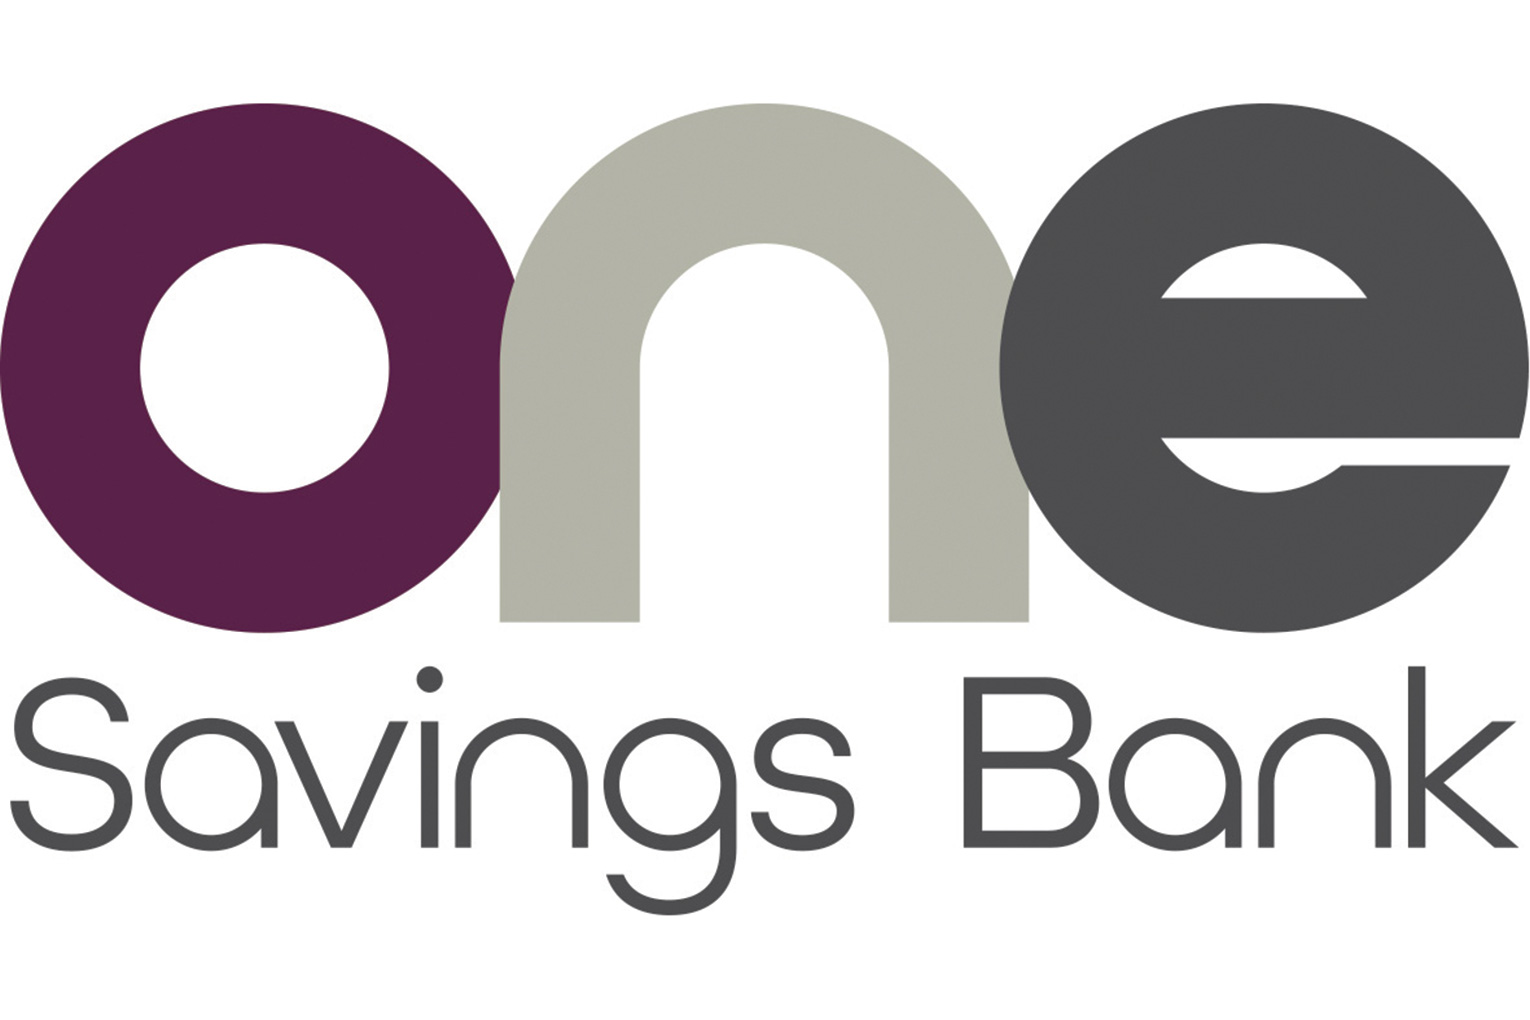 Onesavings Bank increases its 2018 interim dividend by 23%